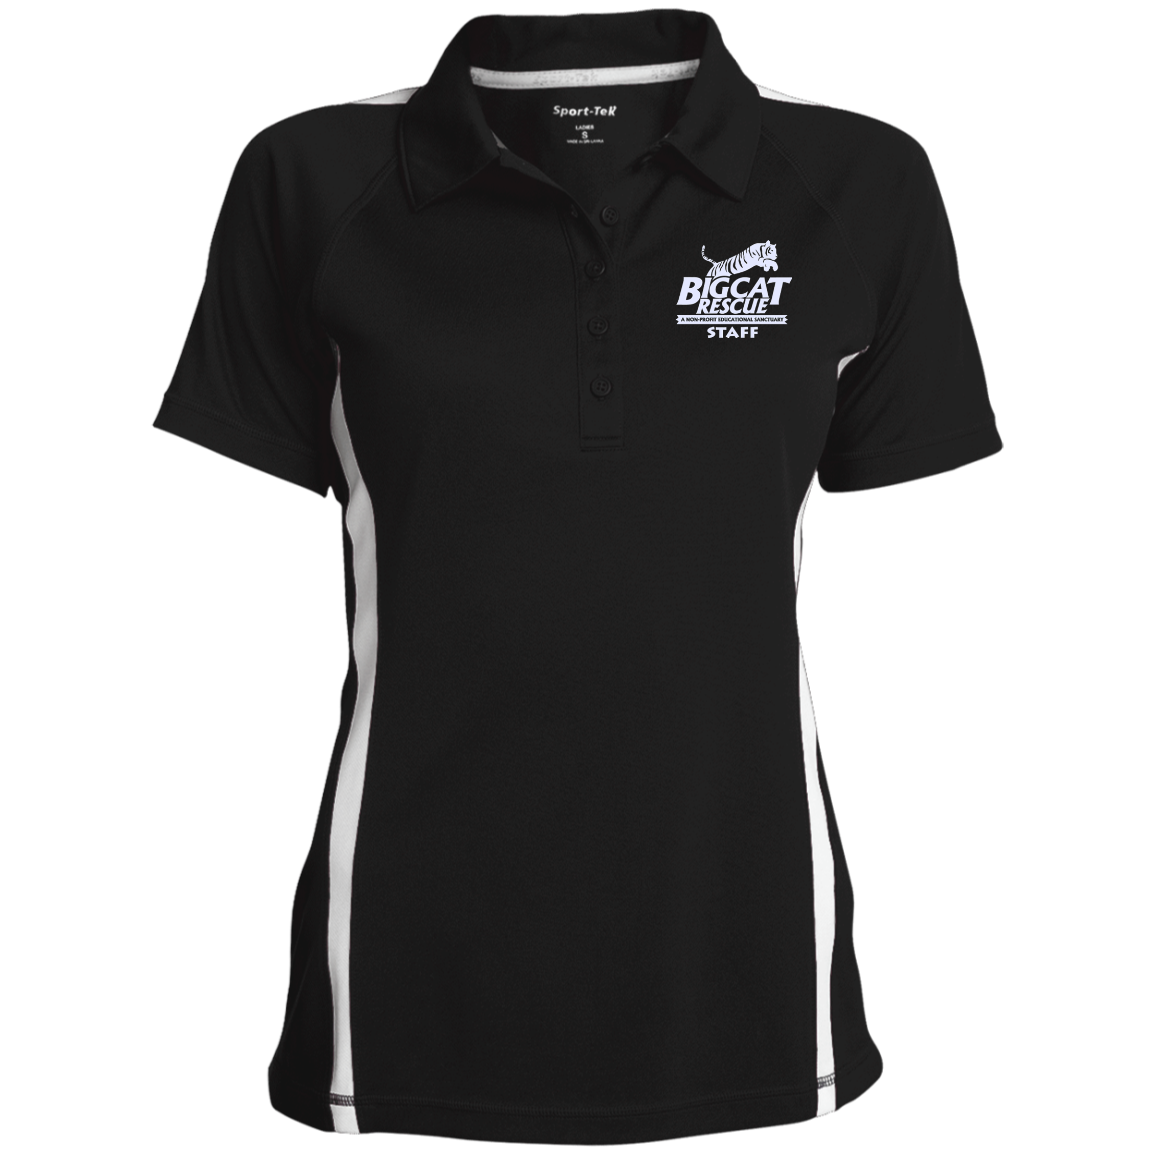 Just added this new StaffOnly Ladies'... for you.  Woo Hoo! What do you think? http://catrescue.myshopify.com/products/staffonly-ladies-custom-colorblock-three-button-polo?utm_campaign=social_autopilot&utm_source=pin&utm_medium=pin